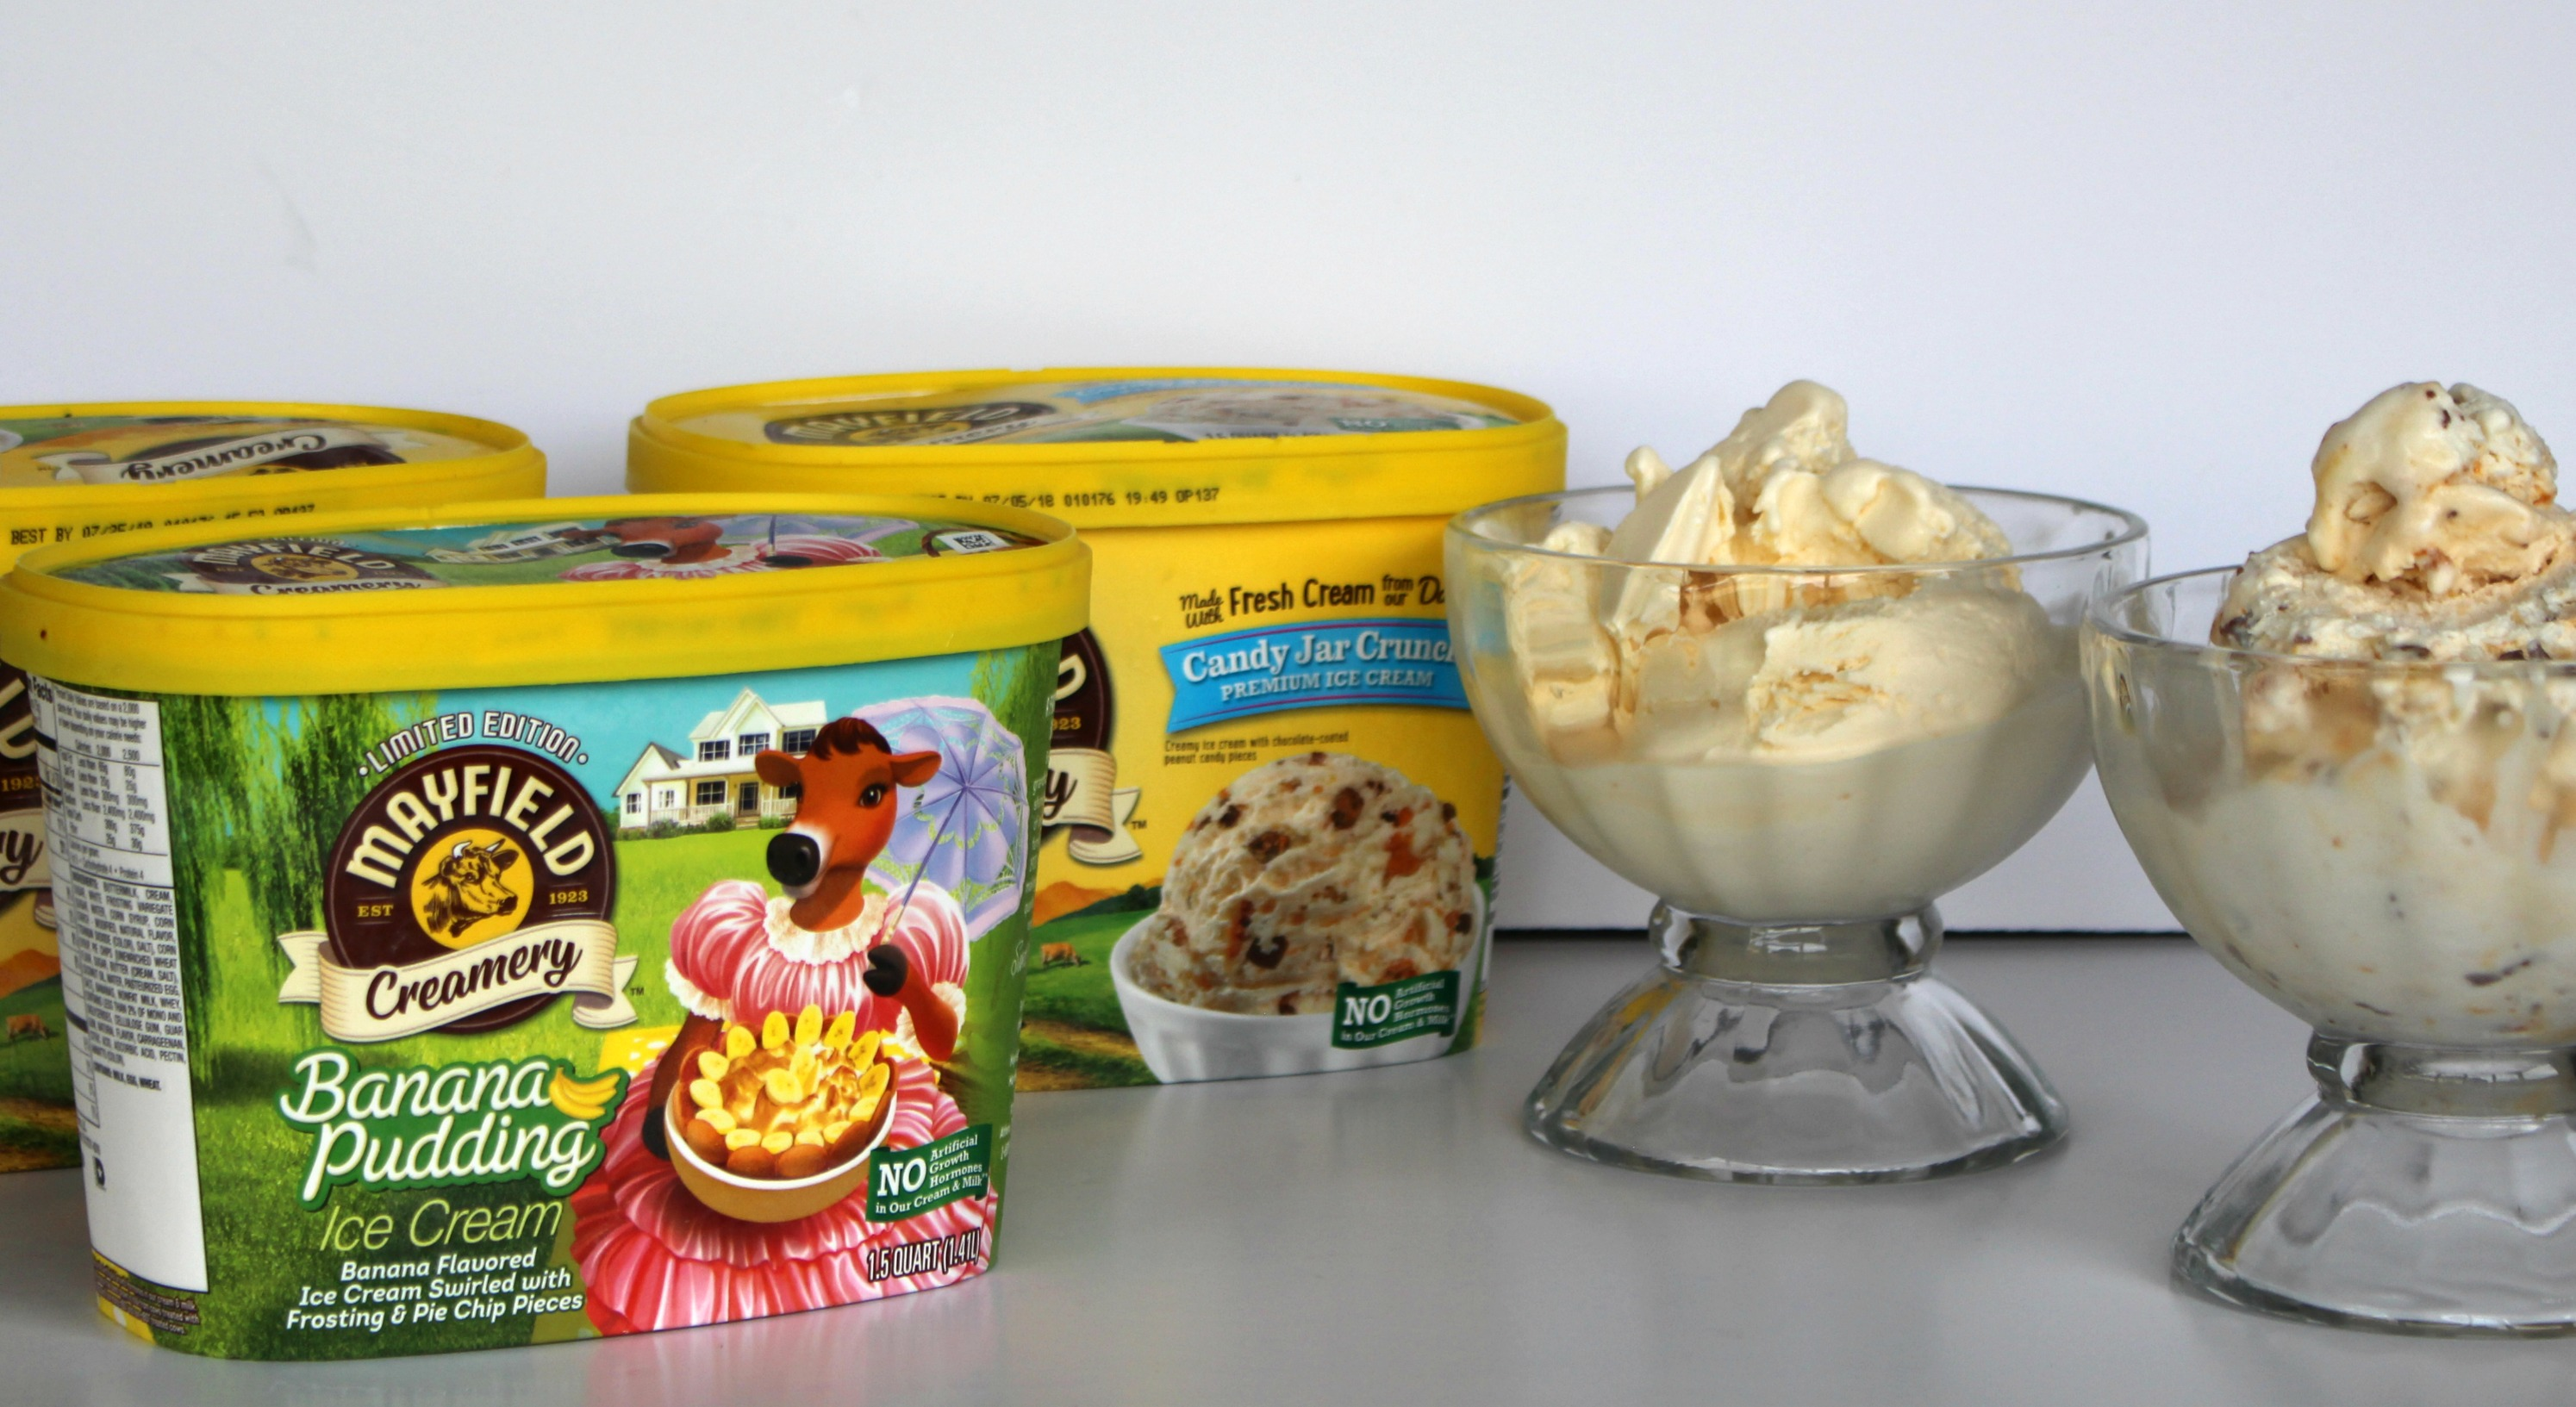 Mayfield Creamery Ice Cream is Now Available at Florida